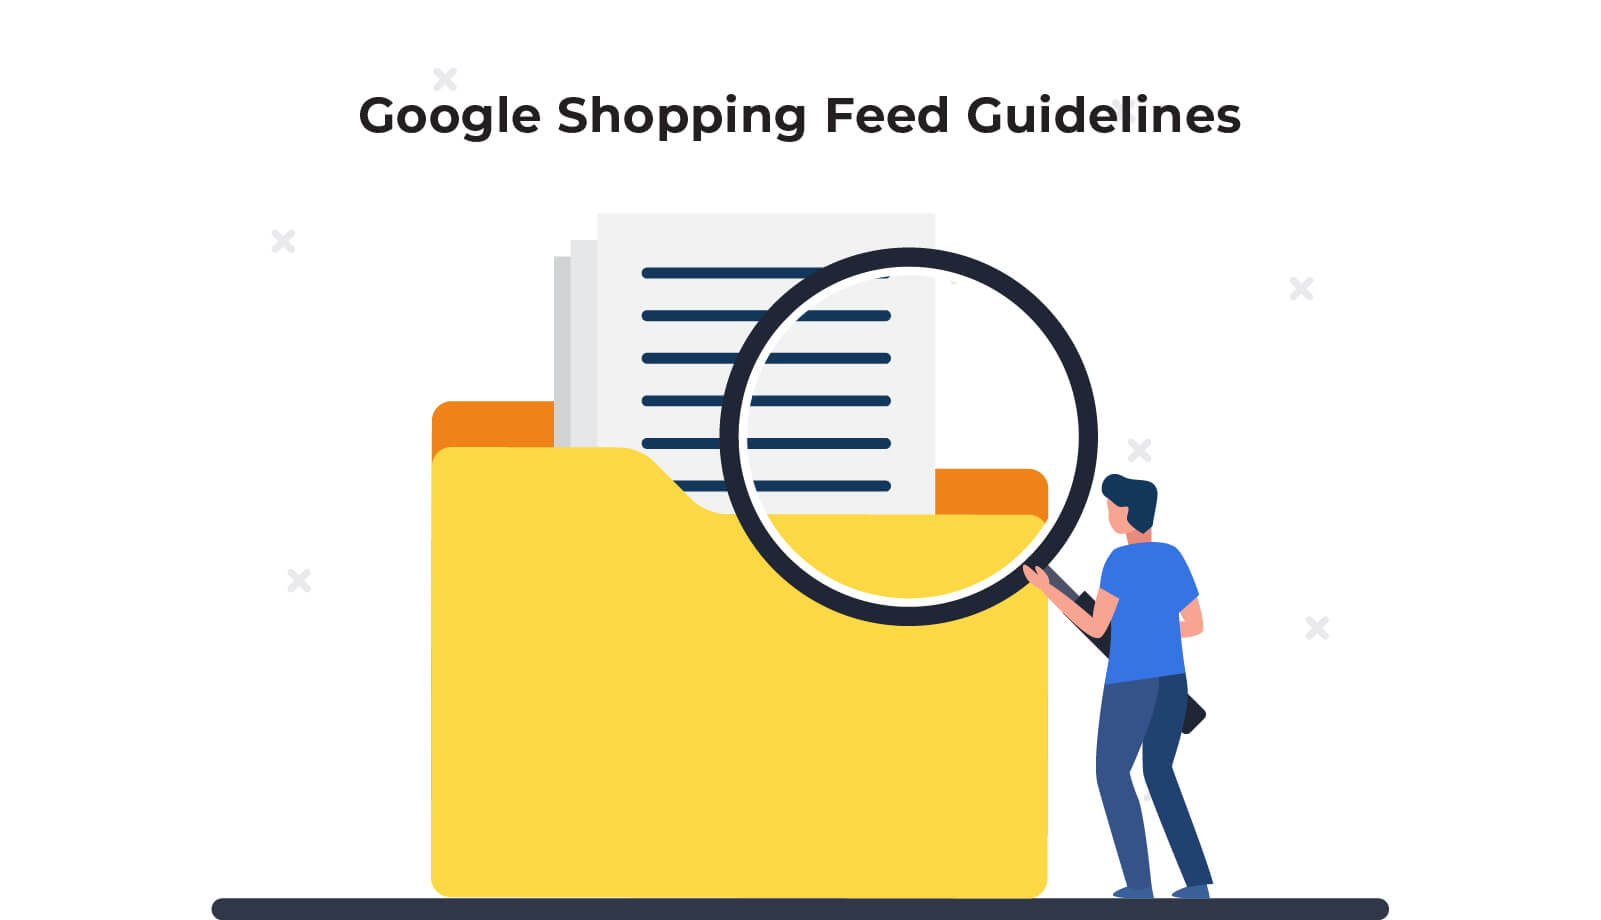 Google Shopping Feed Guidelines